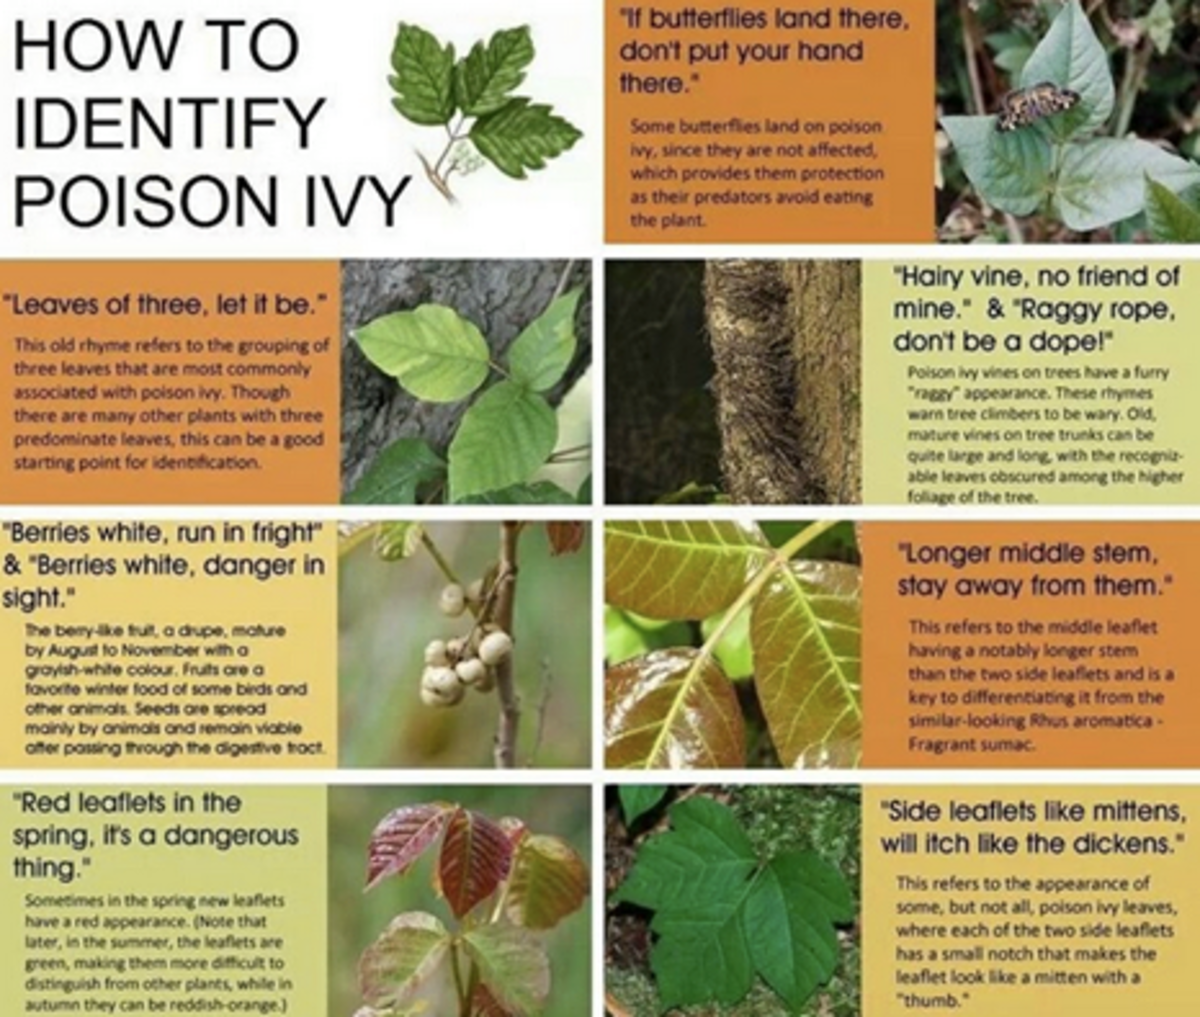 How to Prevent Poison Ivy